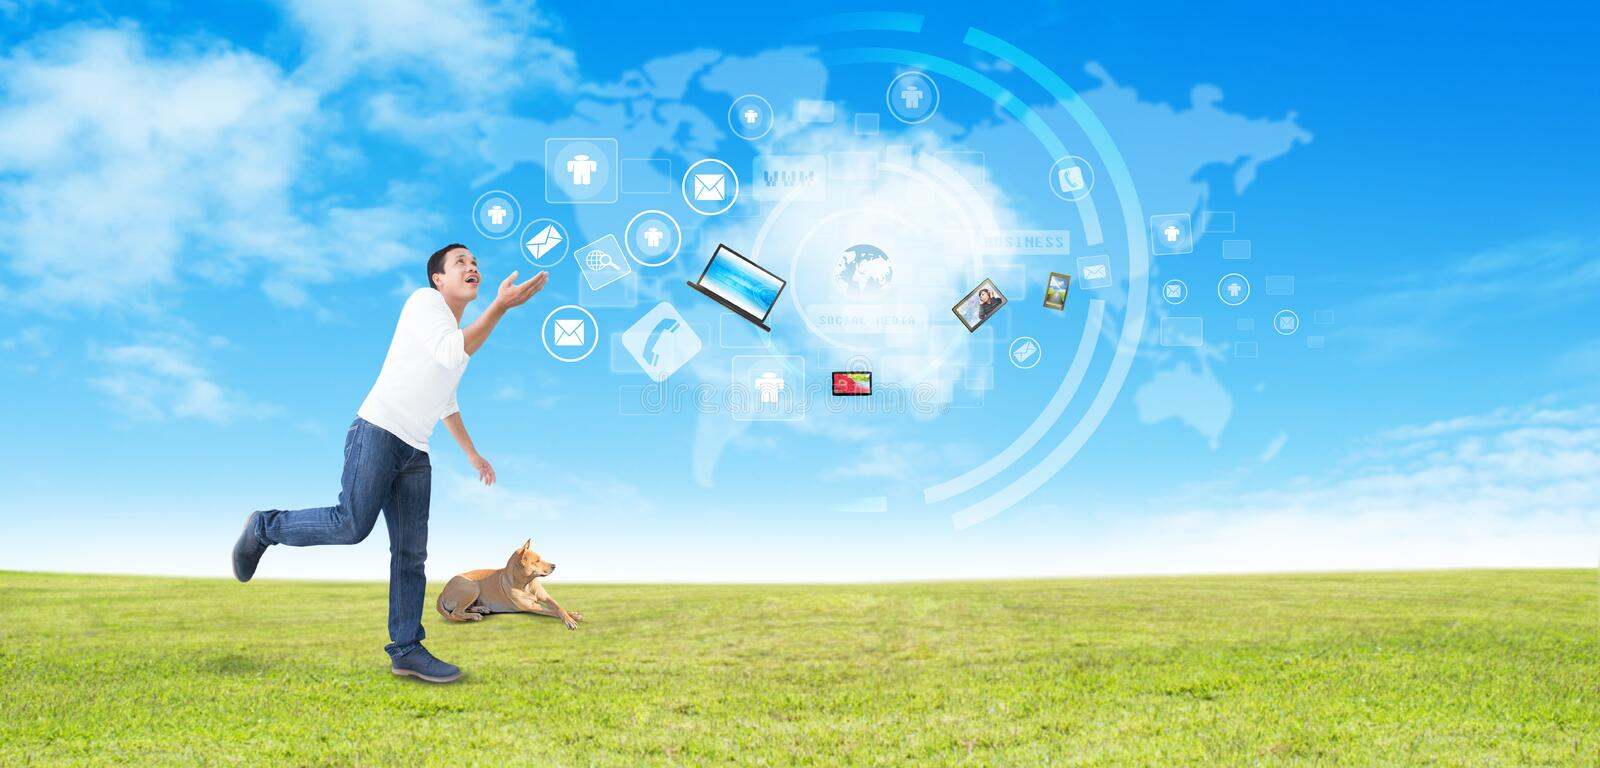 Download Man Juggling With Modern Technology Stock Image - Image: 29935609